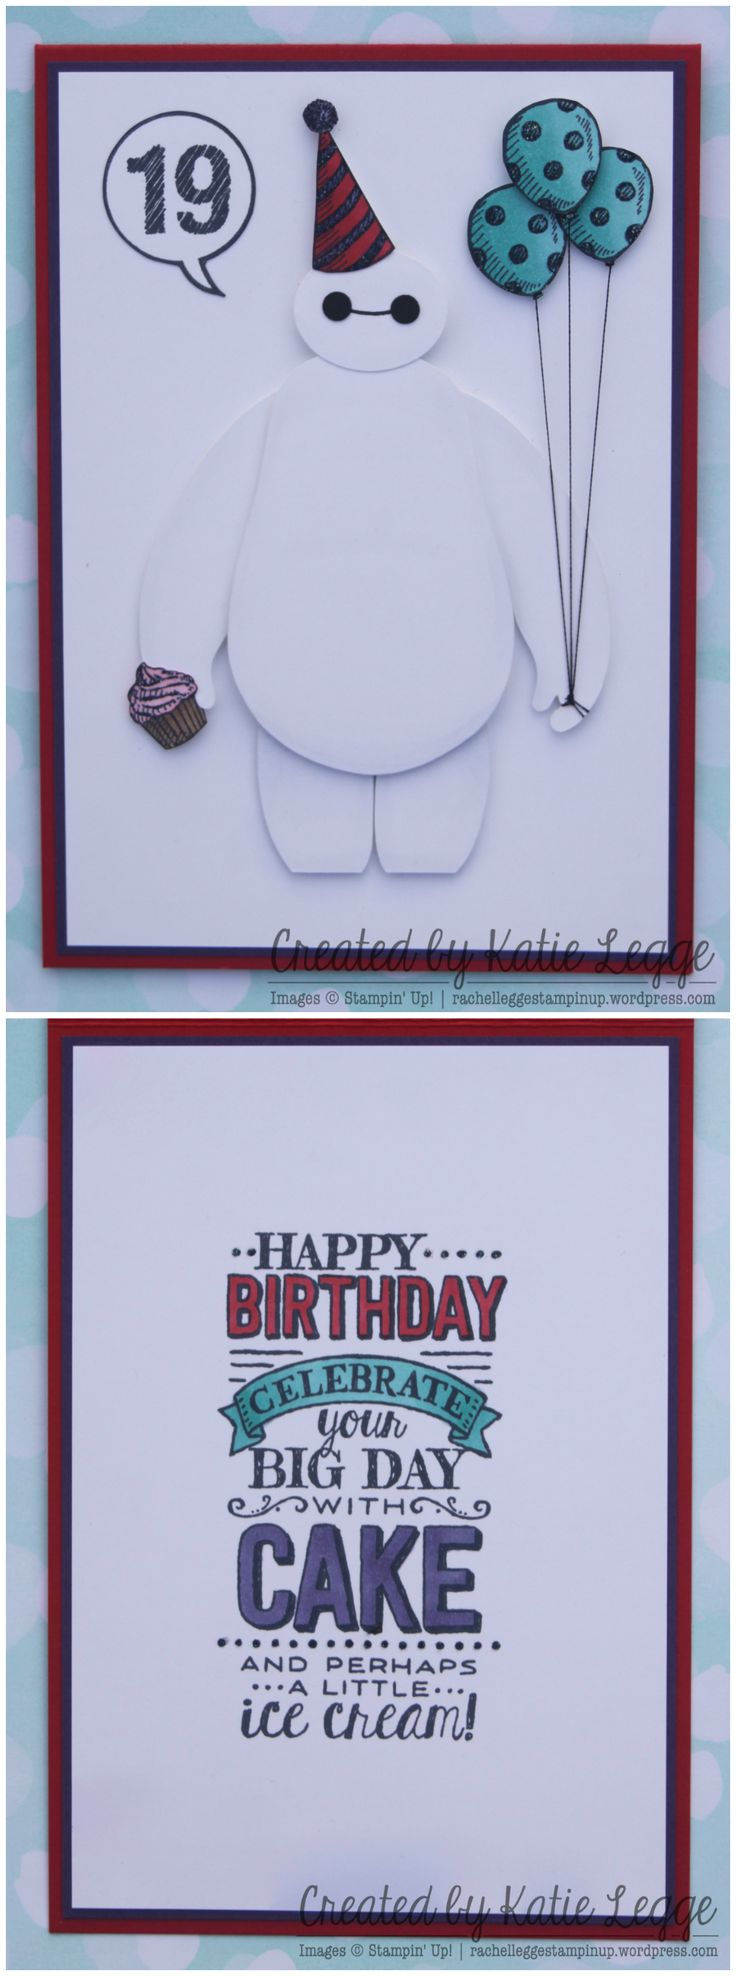 30 Best Card Making Images On Pinterest Presents Gift Ideas And Cards